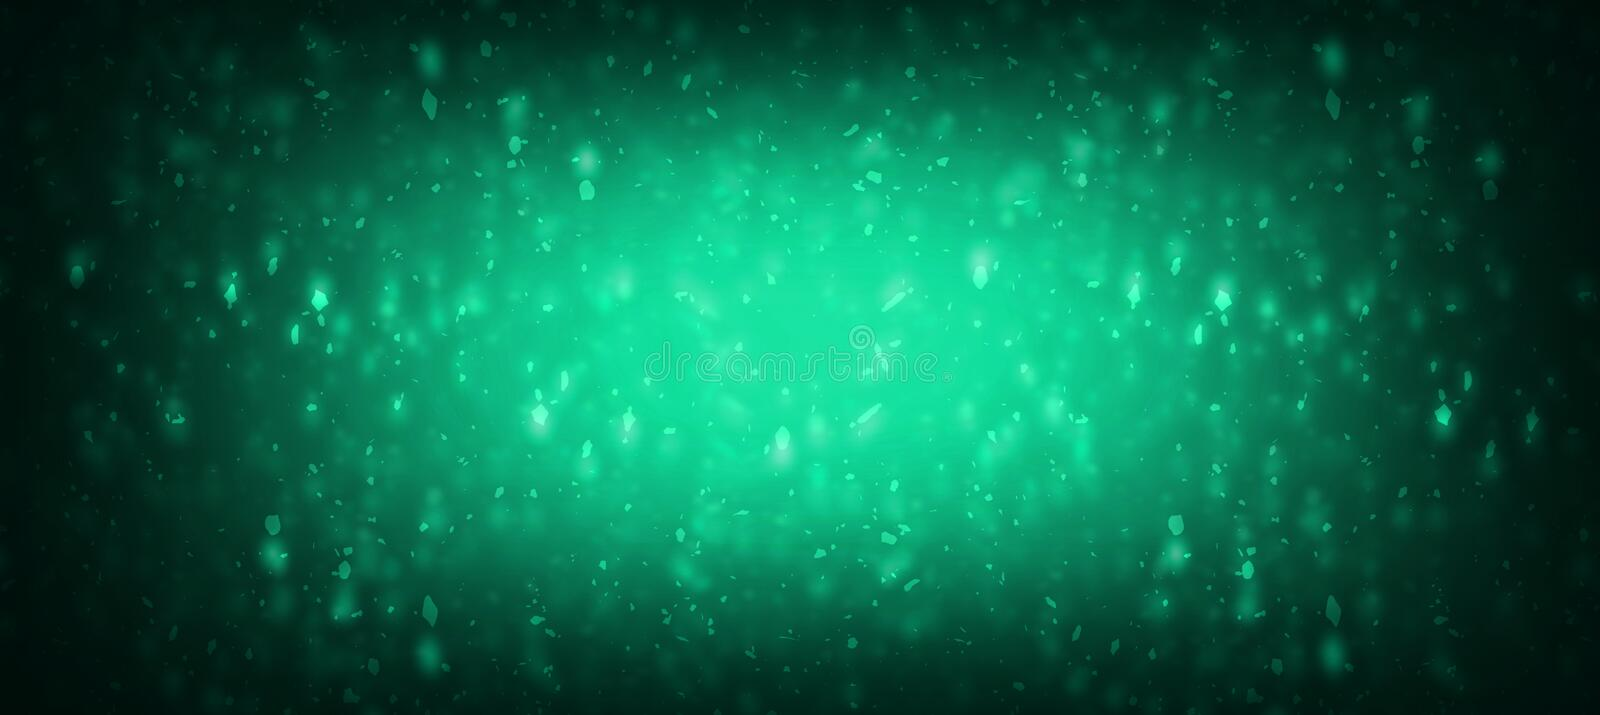 Dark green with light shadow texture effect background for Website banner vector illustration